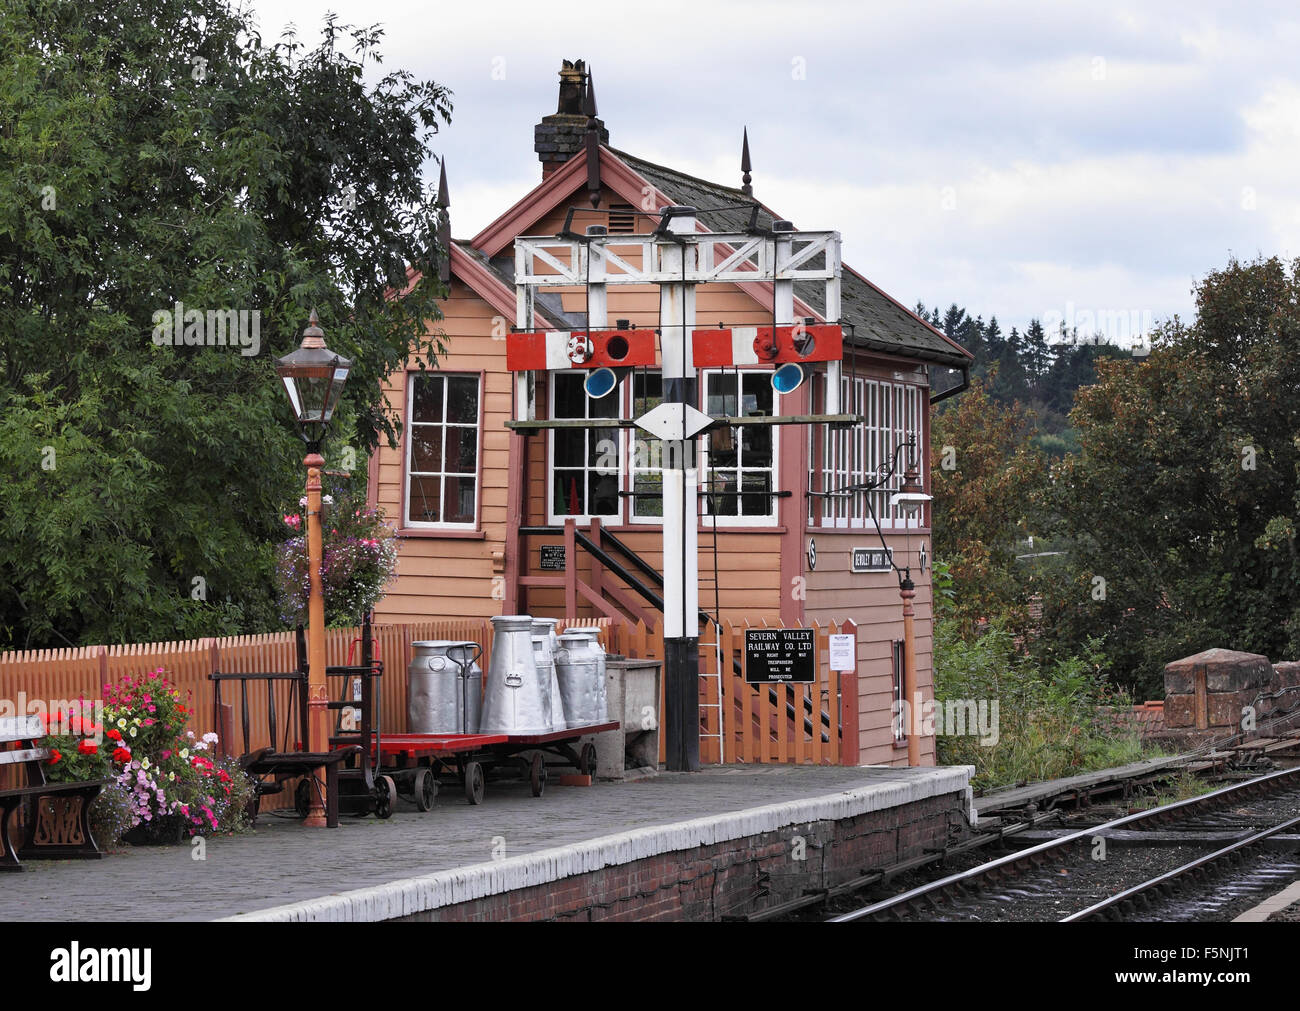 Vintage Signal Box at Bewdley Train Station on the Severn Valley Railway in England - Stock Image